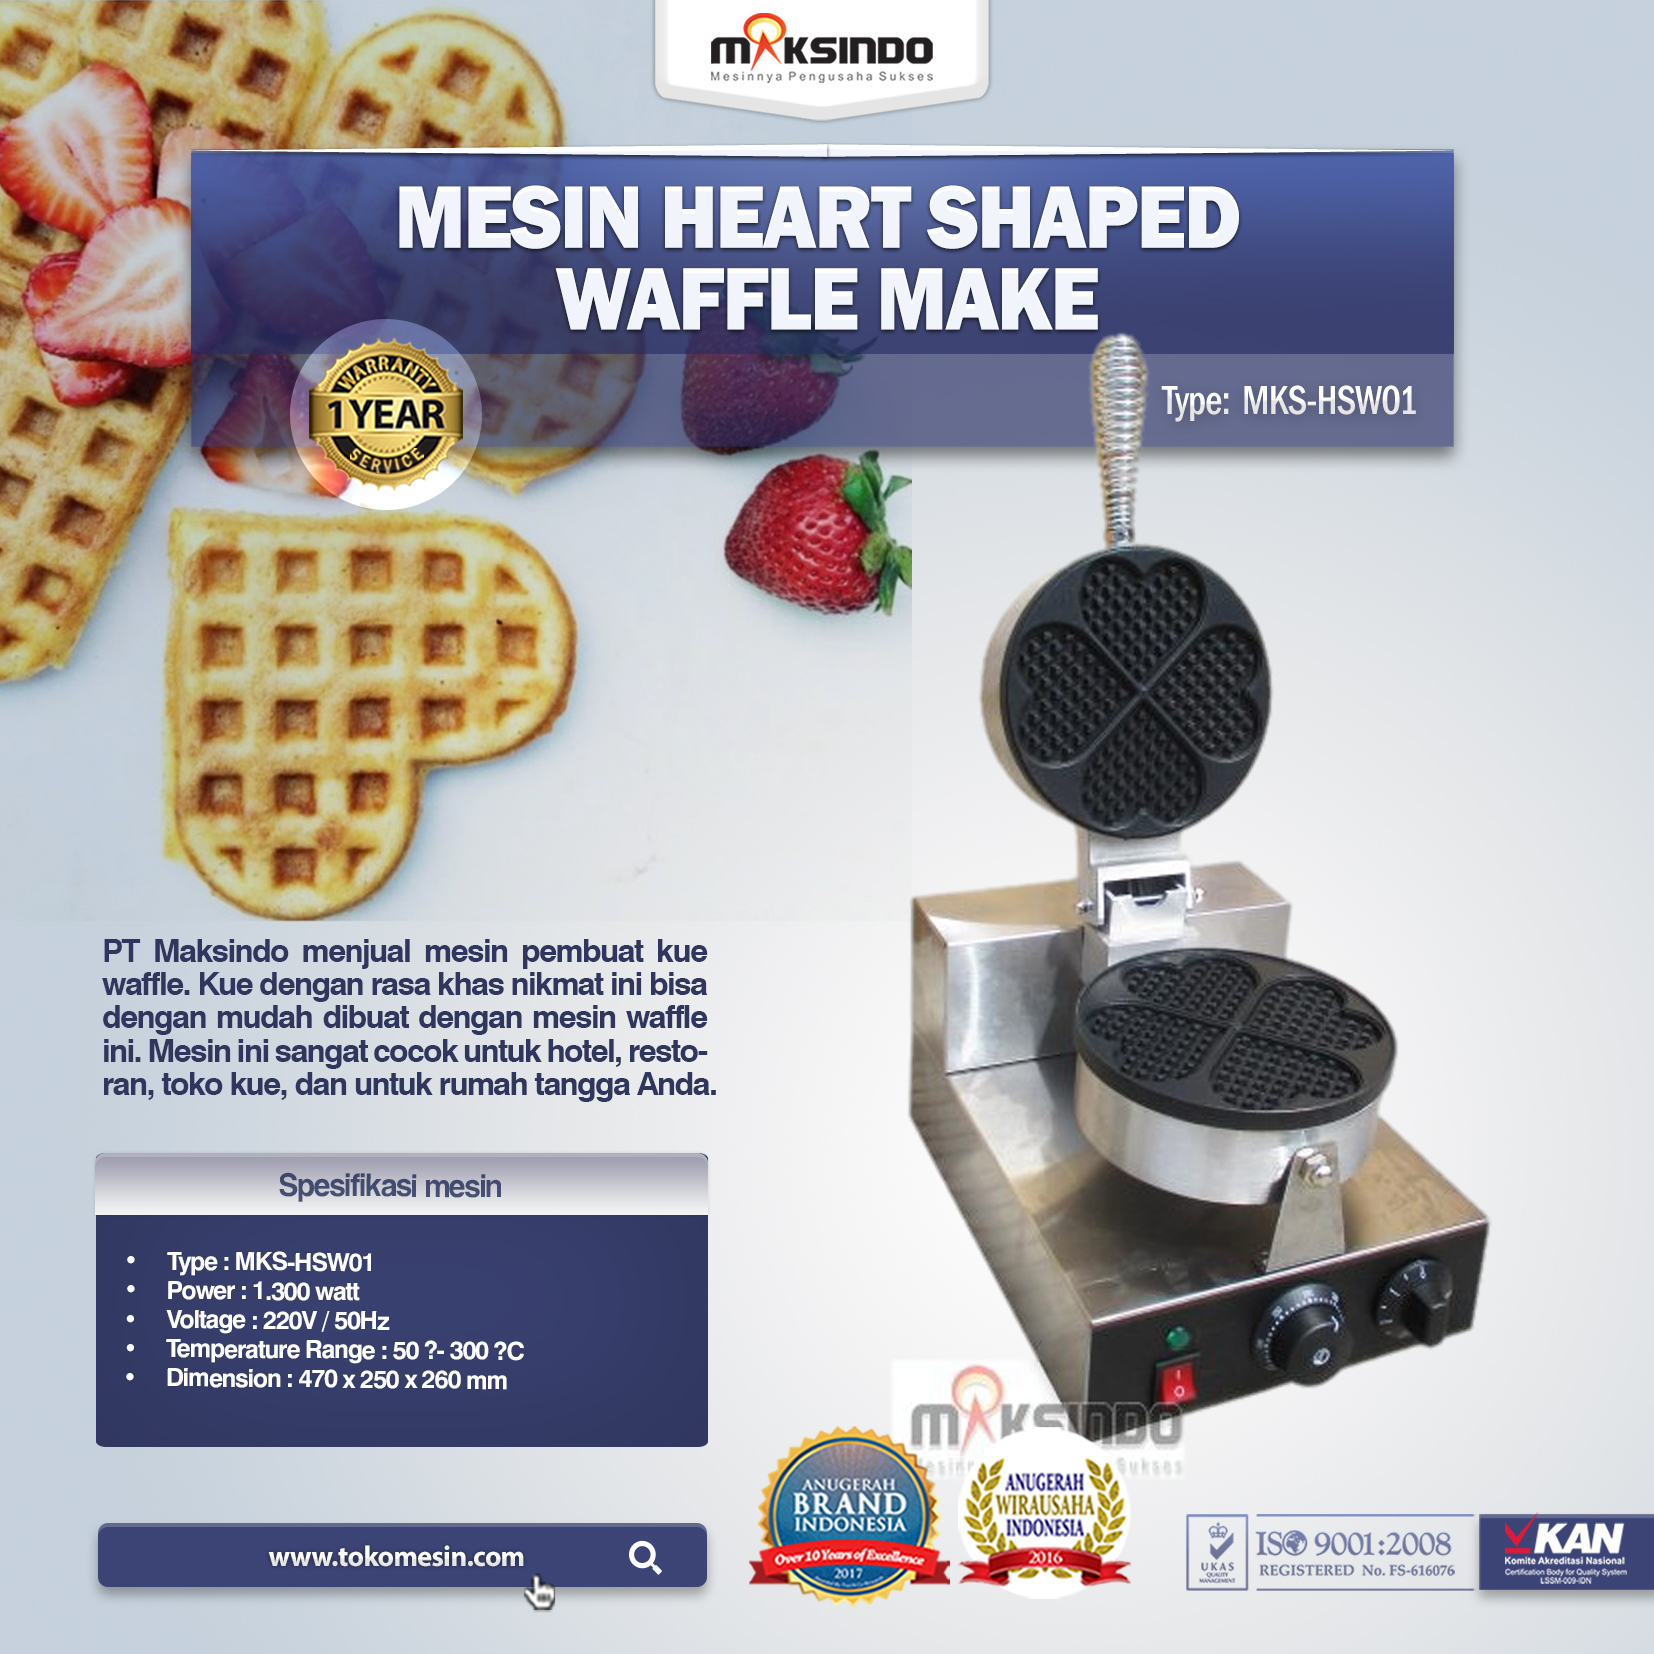 Mesin Heart Shaped Waffle Make MKS-HSW01